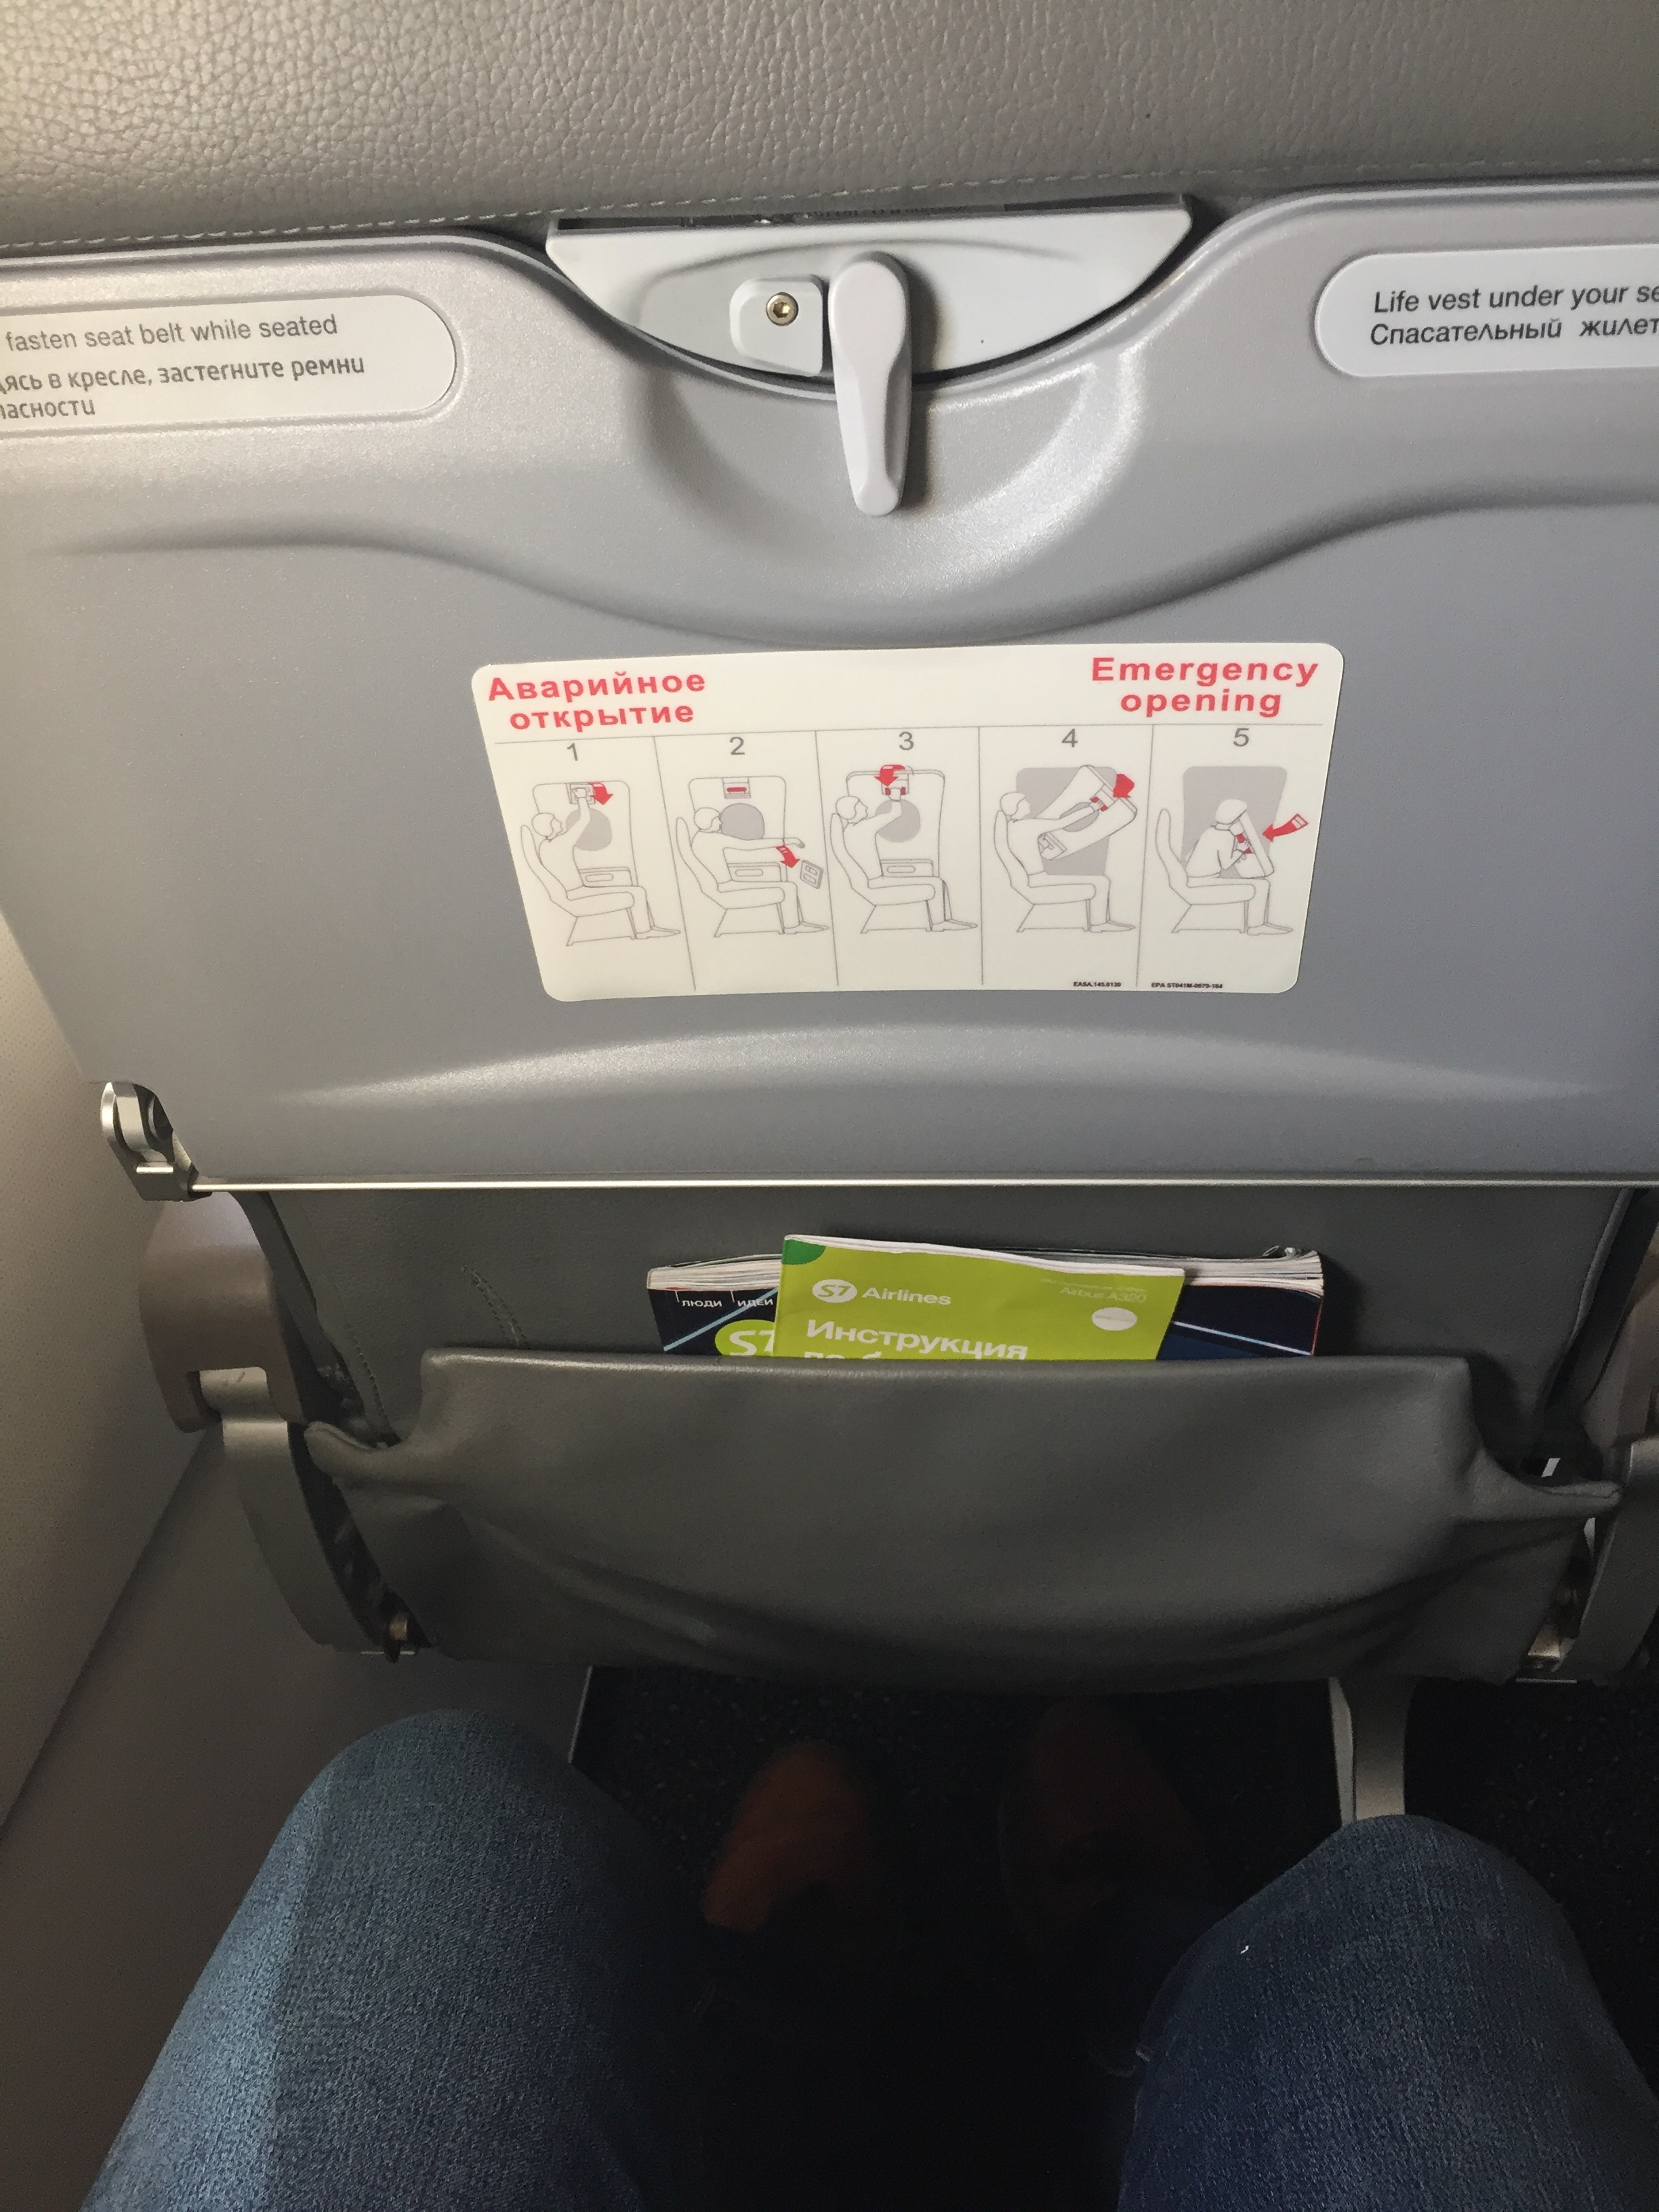 Stretching out on S7 economy class seat by the emergency door